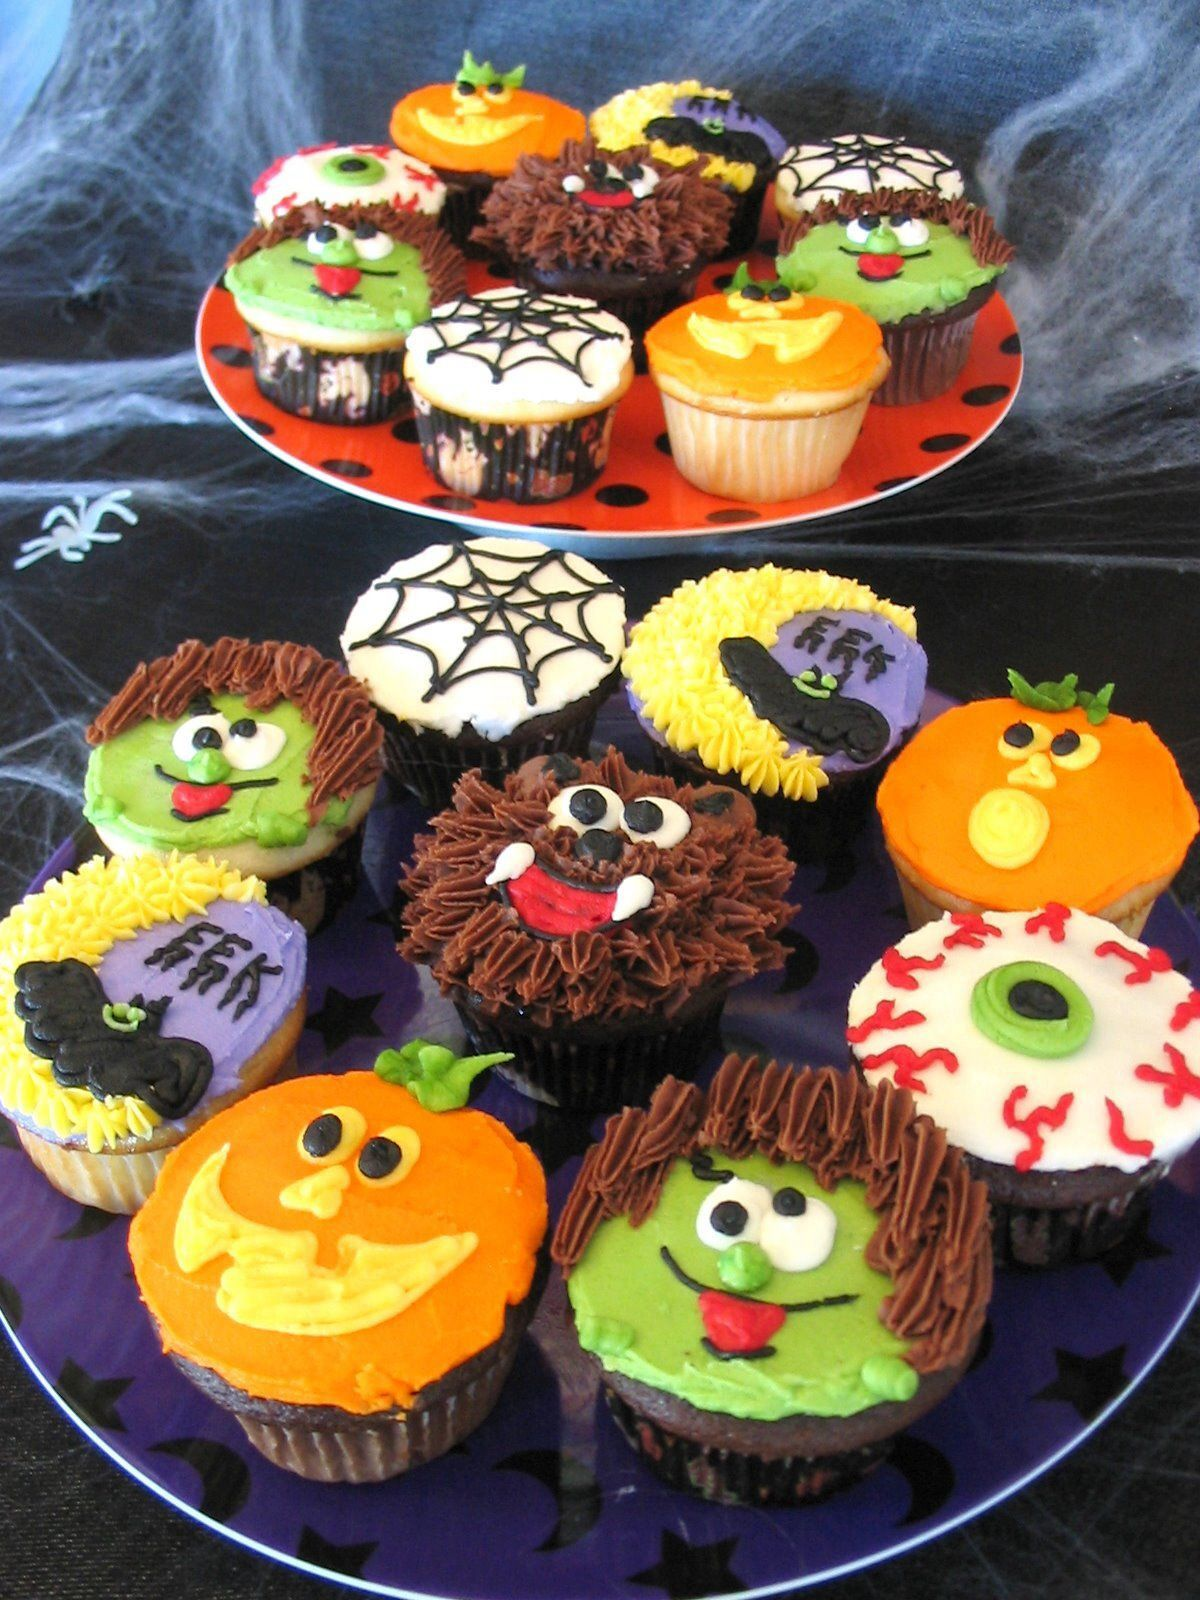 HALLOWEEN Cupcakes HALLOWEEN DECOR, IDEAS, TREATS, PETS, YARDS - Halloween Cake Decorating Ideas